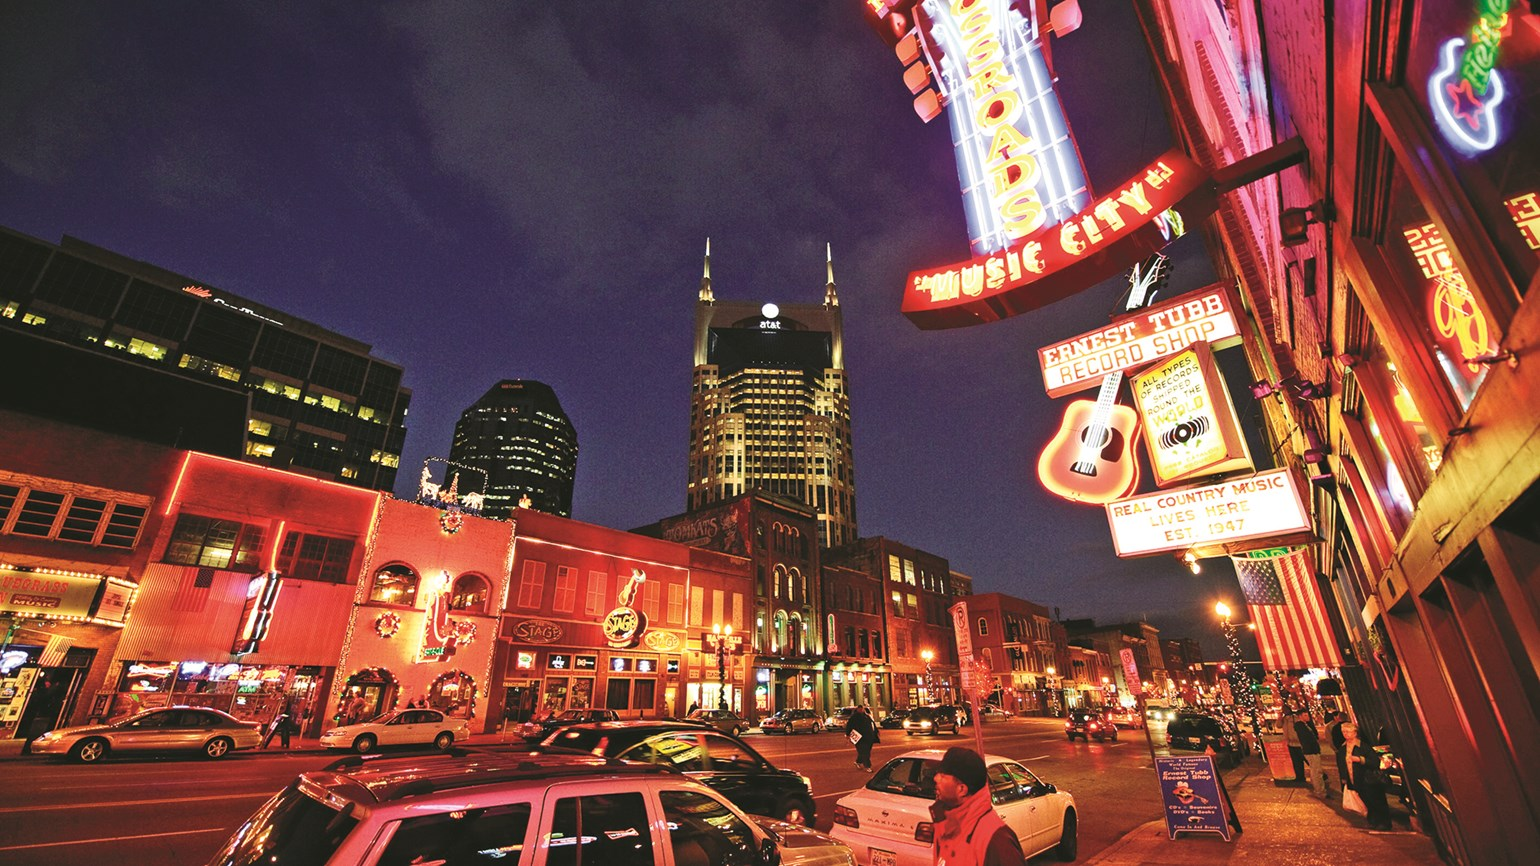 Nashville S Broadway Roximately 5 000 Hotel Rooms Are In The City Development Pipeline